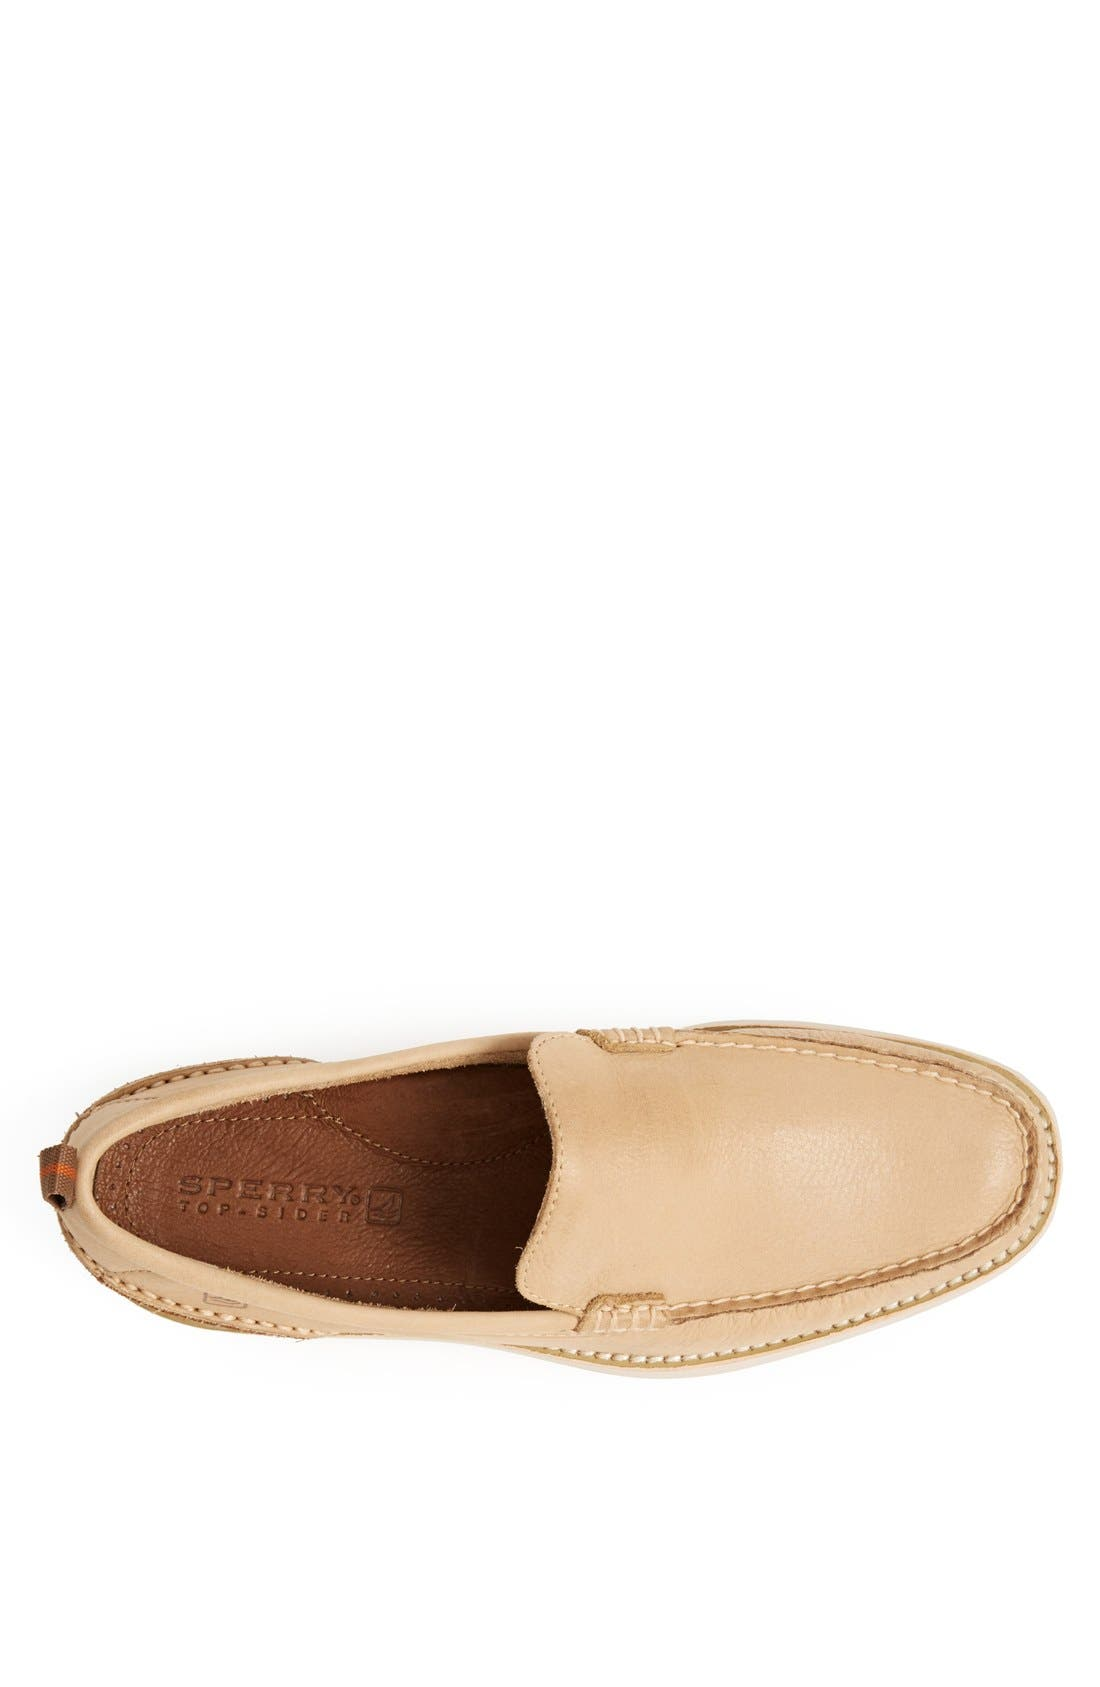 Alternate Image 3  - Sperry Top-Sider® 'Seaside Venetian' Slip-On